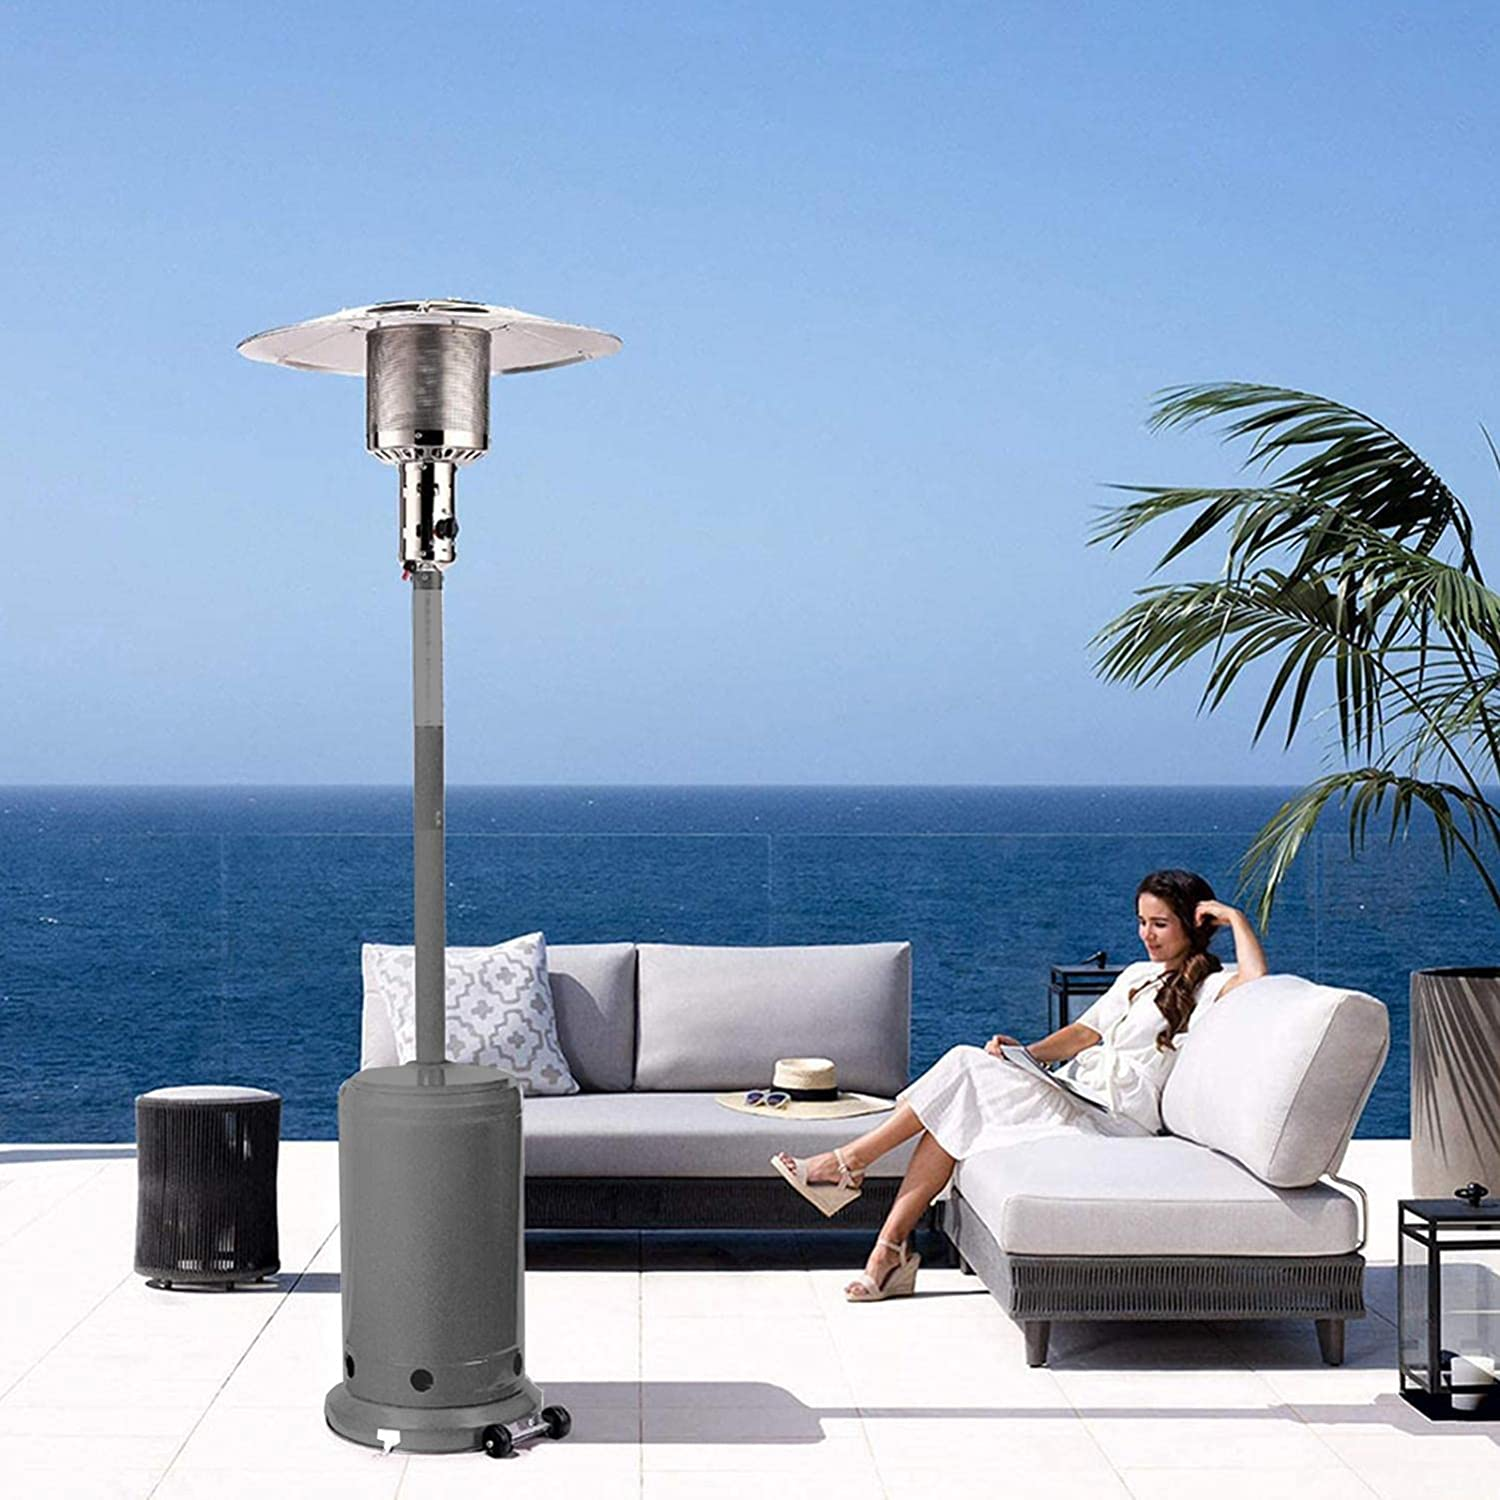 VICXYY Outdoor Heaters for Patio 00 Brand Cheap Sale Venue Max 62% OFF 46 - Propane